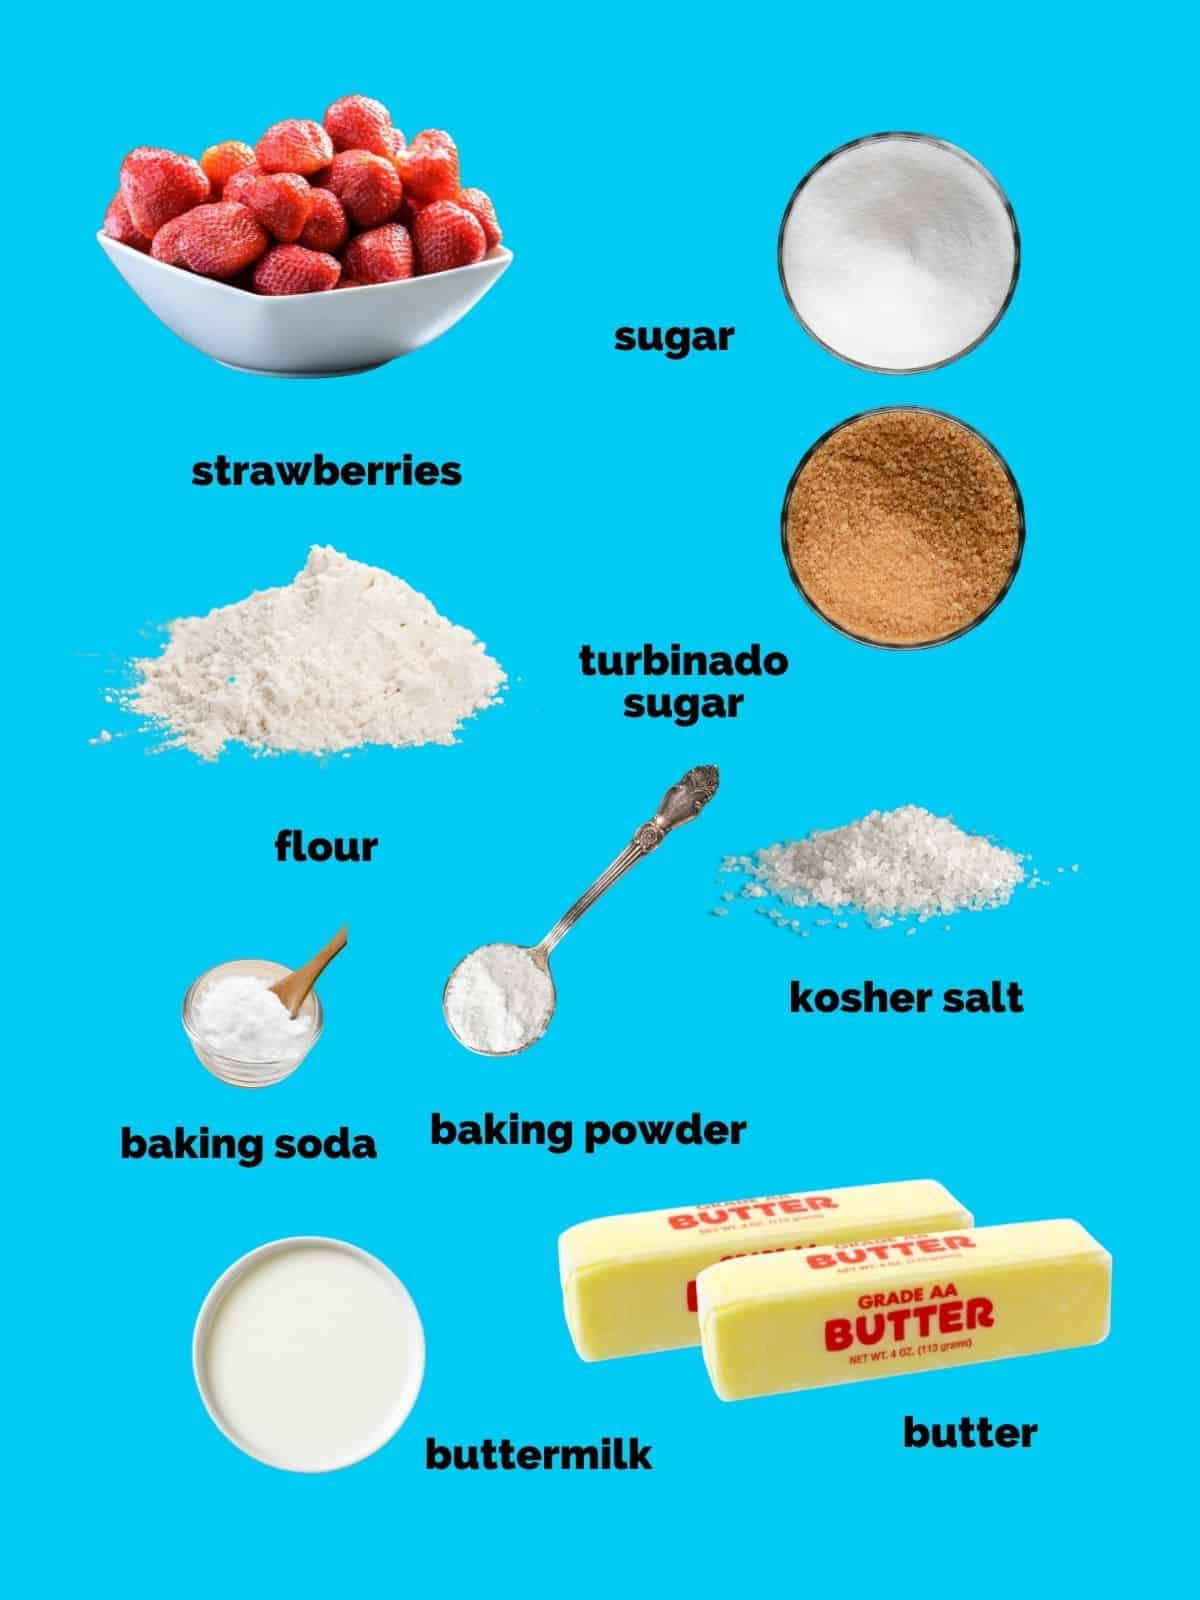 Ingredients needed to make strawberry shortcakes and shortcake biscuits.